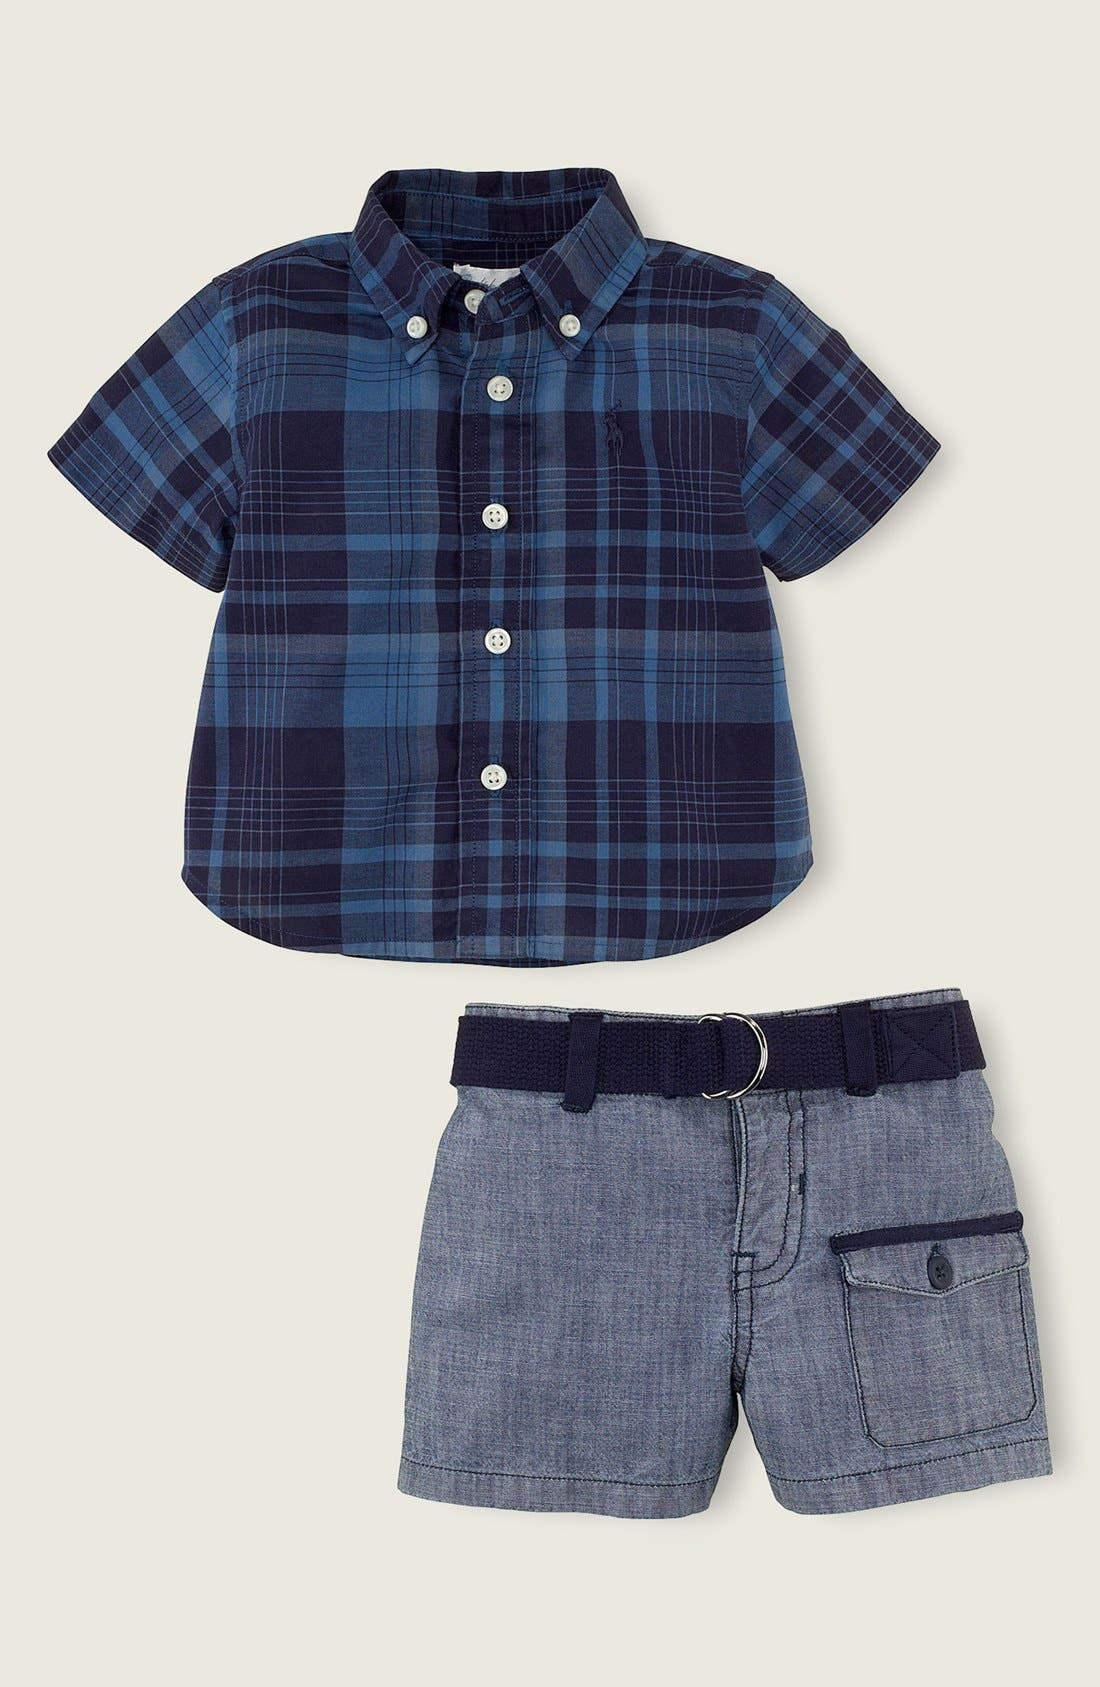 Main Image - Ralph Lauren Plaid Shirt & Shorts (Baby Boys)